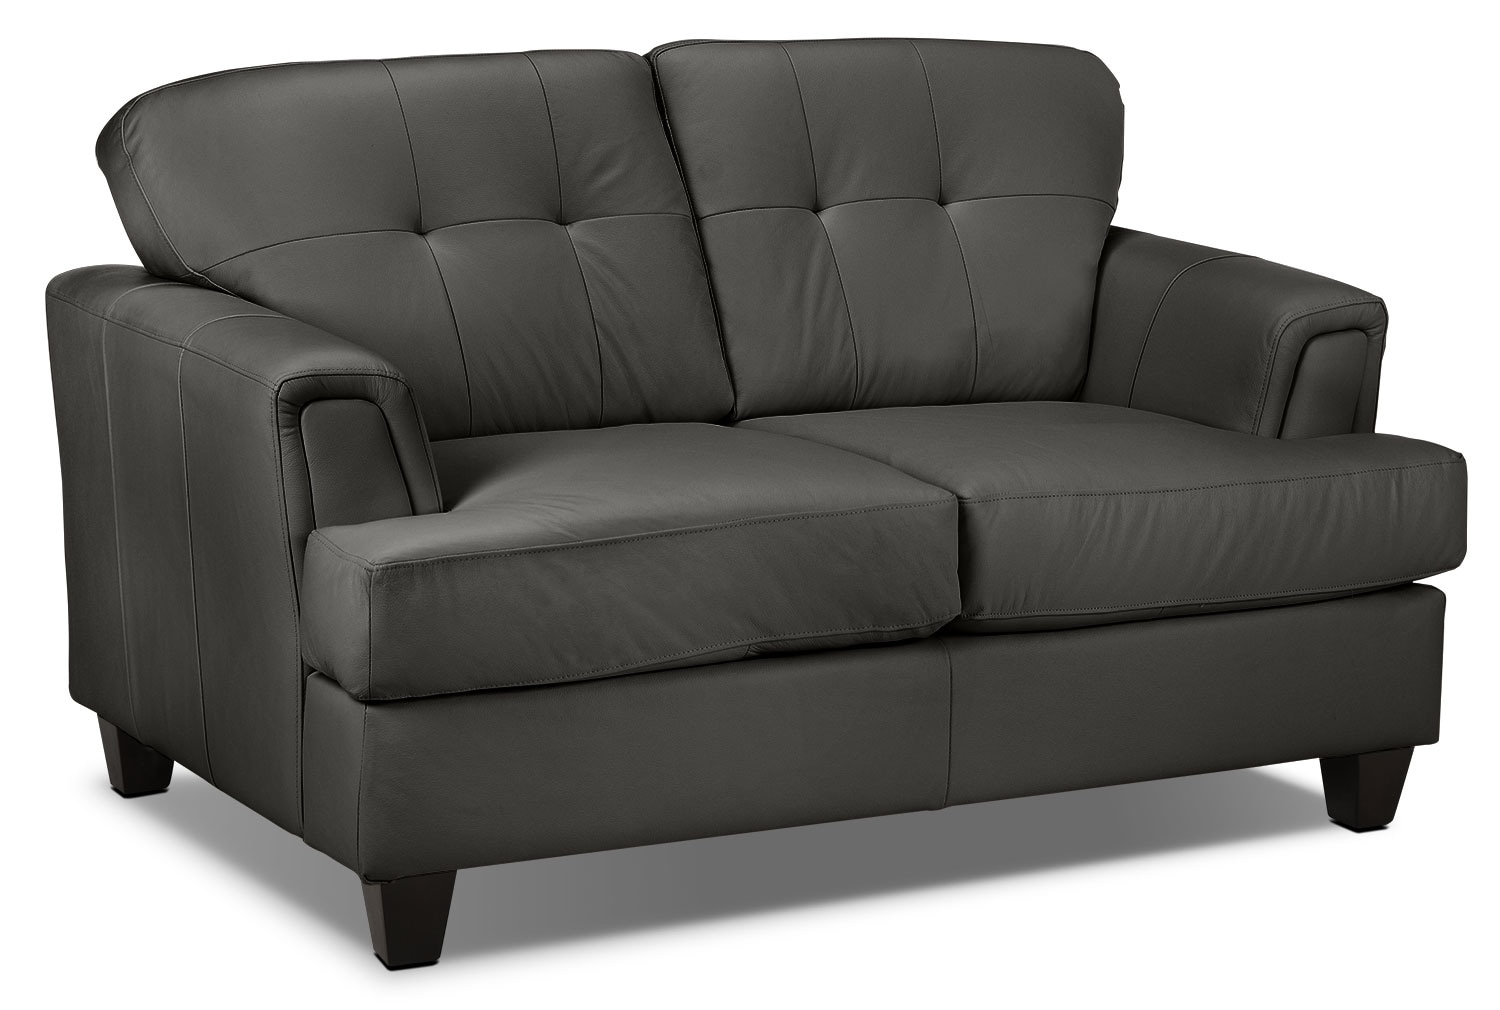 Living Room Furniture - Spencer Loveseat - Smoke Grey